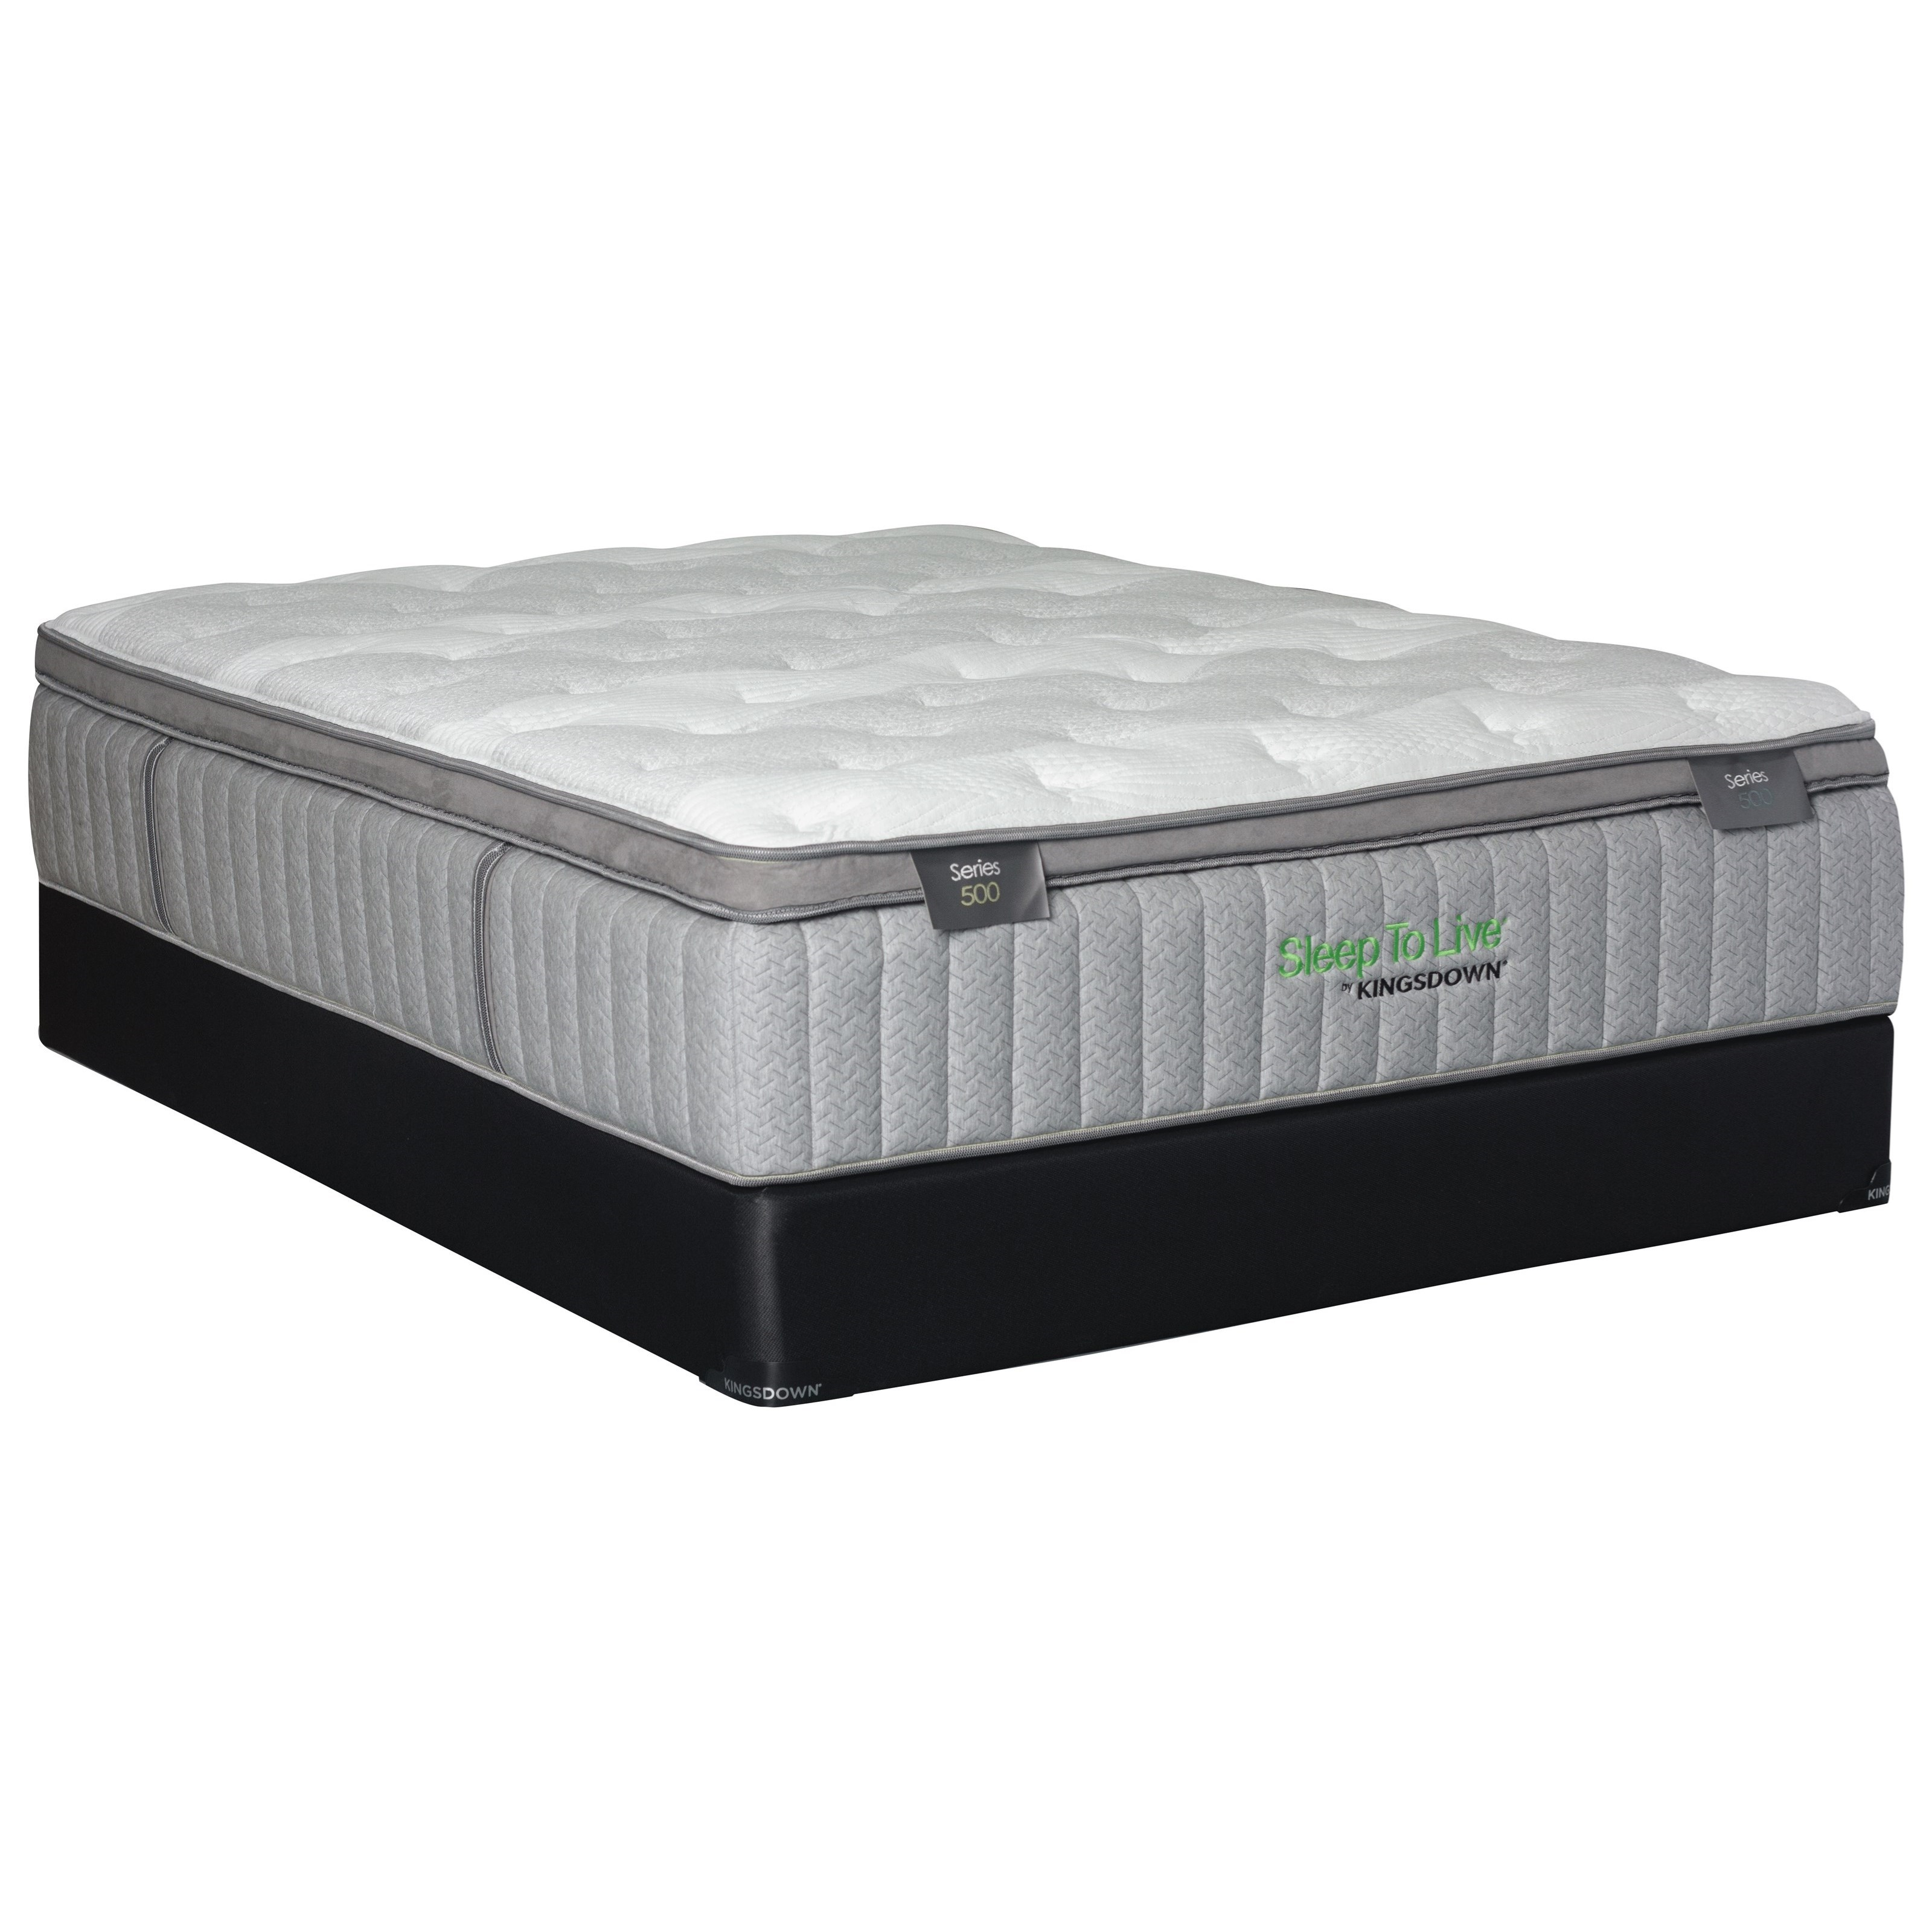 Back Smart Series 500 King Back Smart Series 500 Mattress Set by Sleep to Live at Baer's Furniture